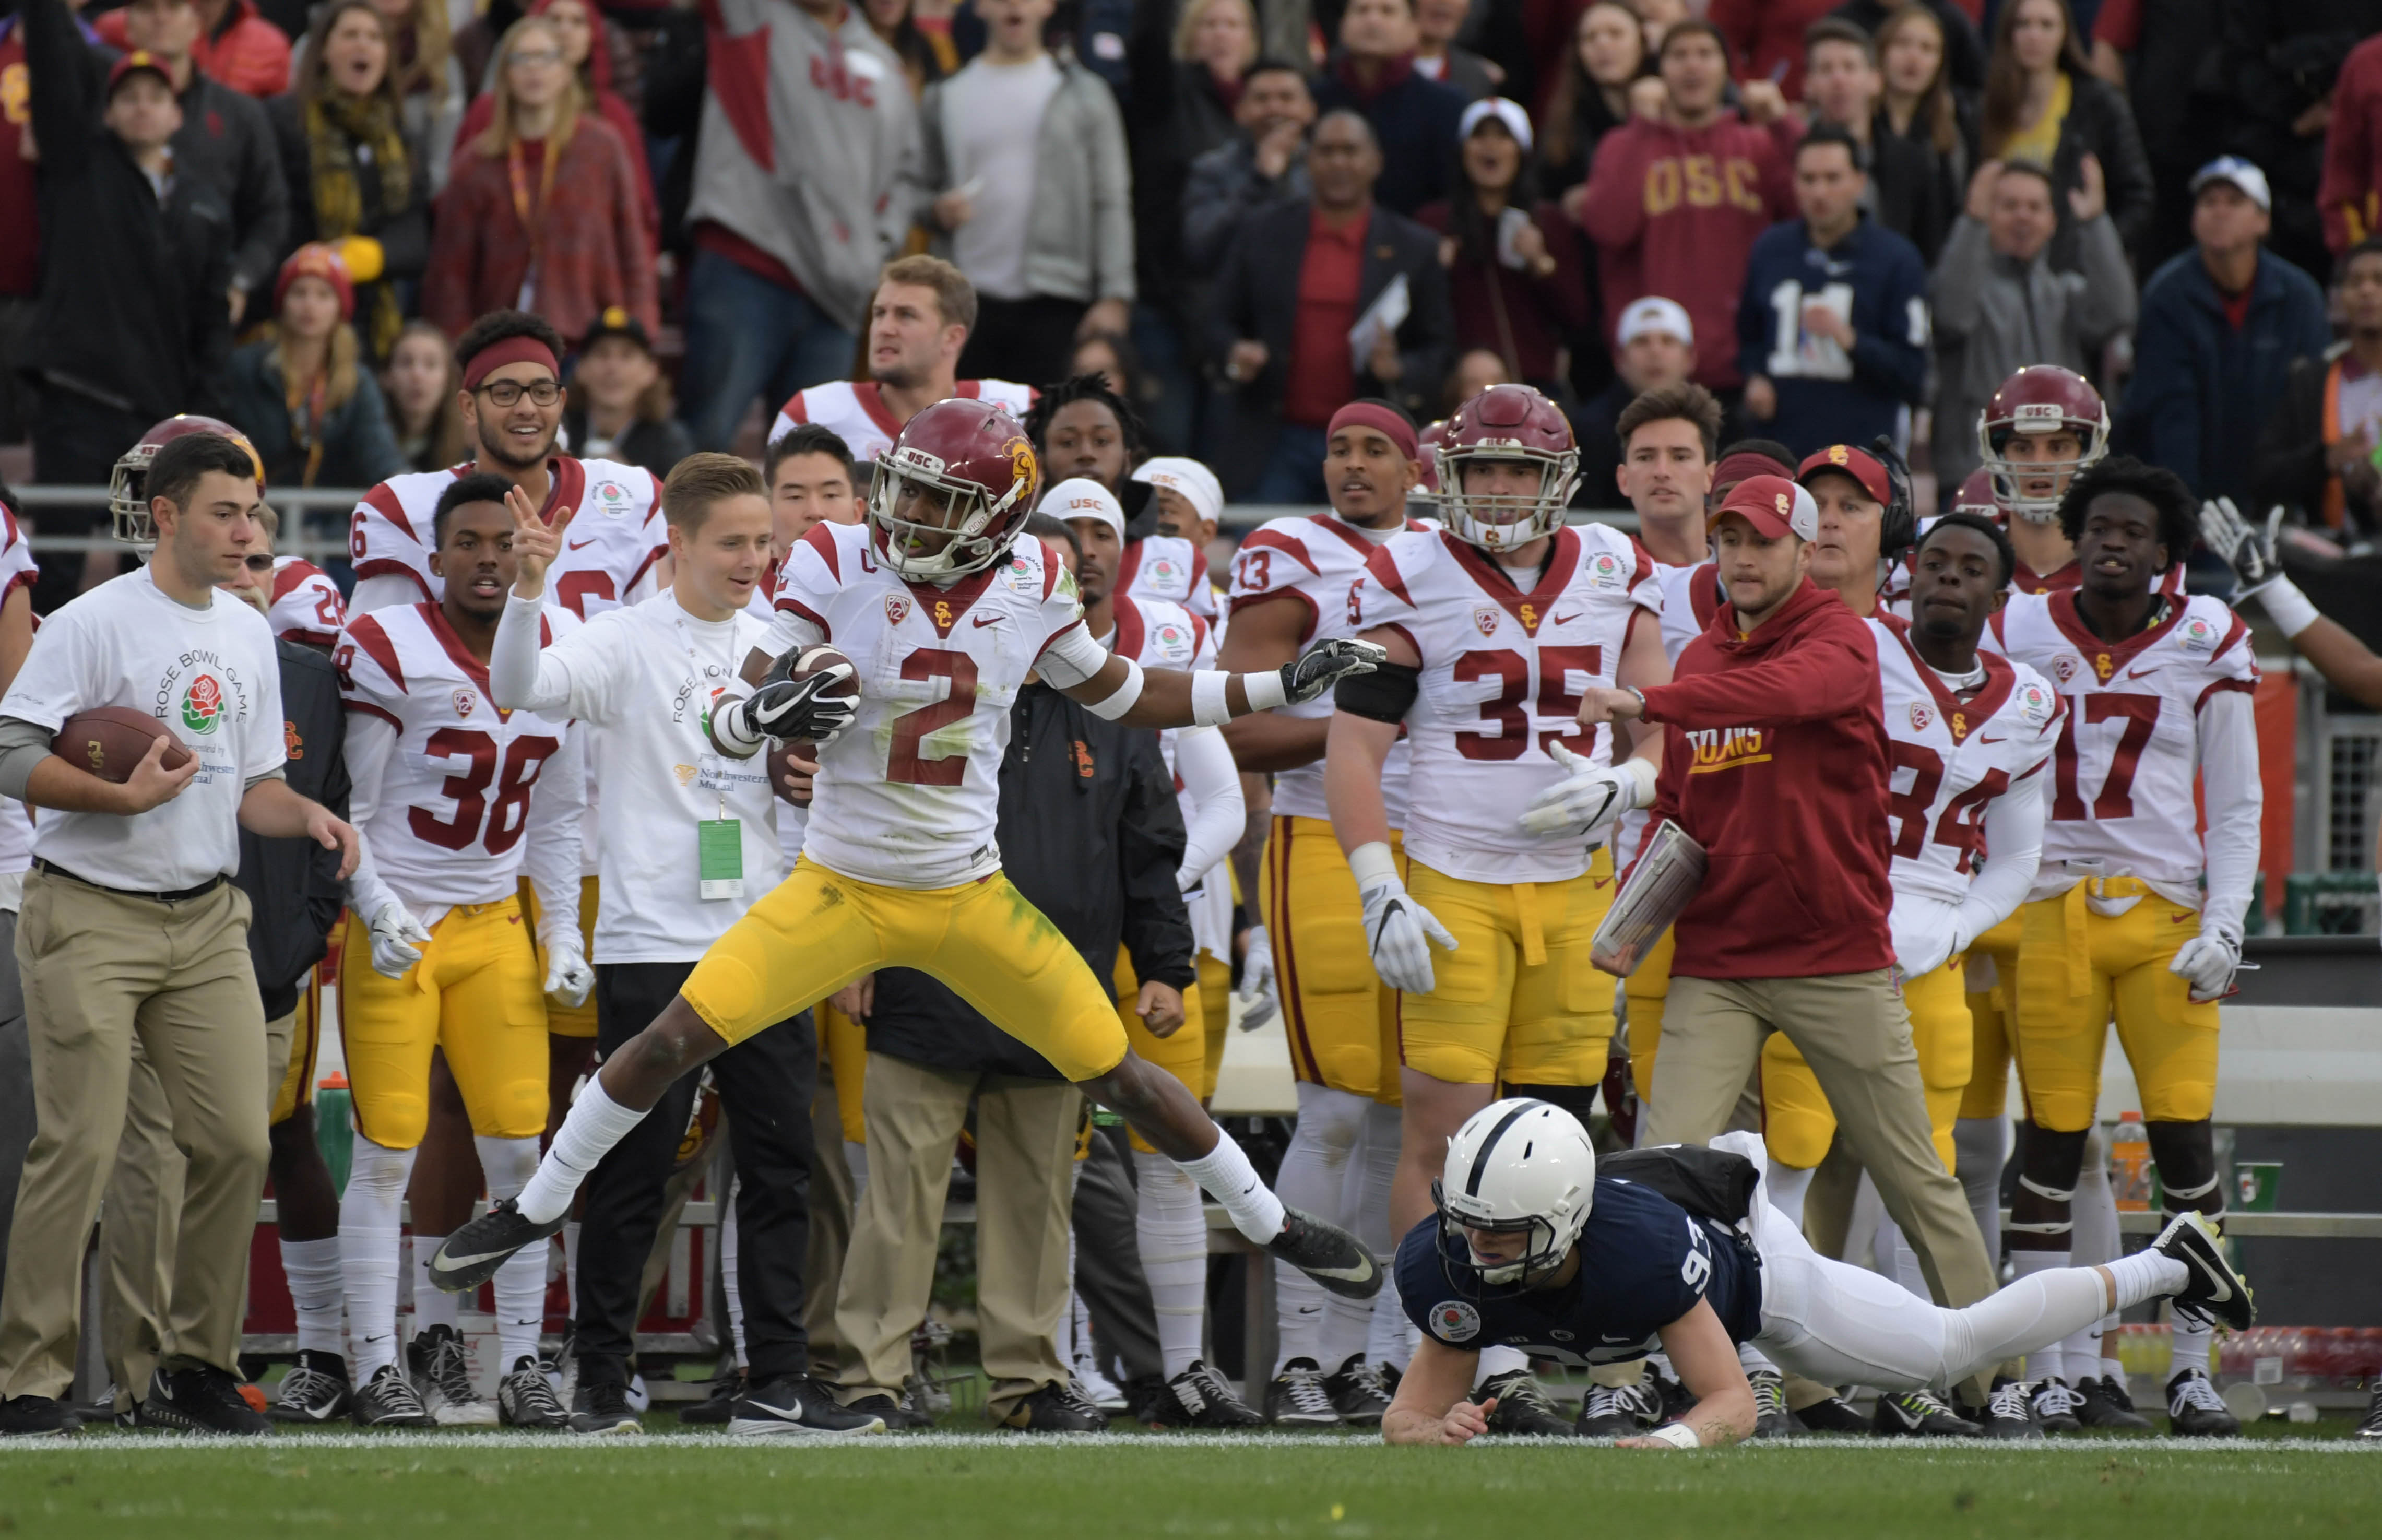 Jan 2, 2017; Pasadena, CA, USA; USC Trojans defensive back Adoree' Jackson (2) carries the ball against the Penn State Nittany Lions during the 103rd Rose Bowl at Rose Bowl. USC defeated Penn State 52-49 in the highest scoring game in Rose Bowl history. Mandatory Credit: Kirby Lee-USA TODAY Sports